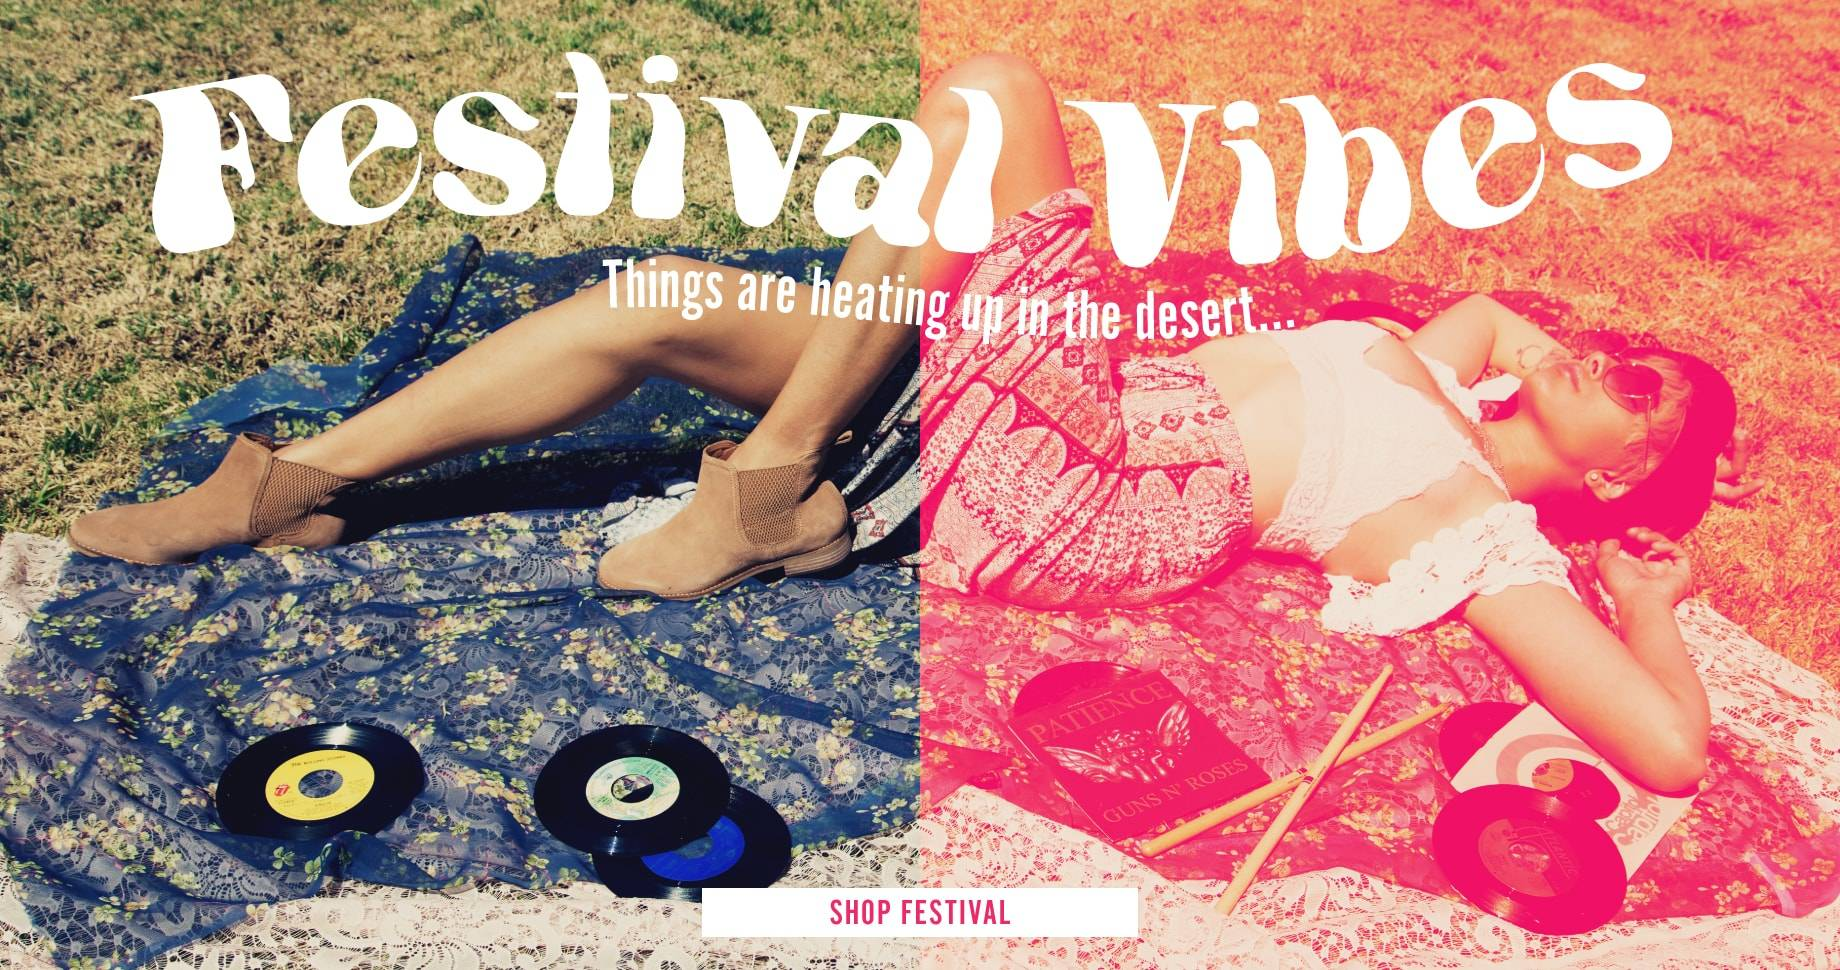 Festival Vibes.  Things are heating up in the desert | Shop Festival